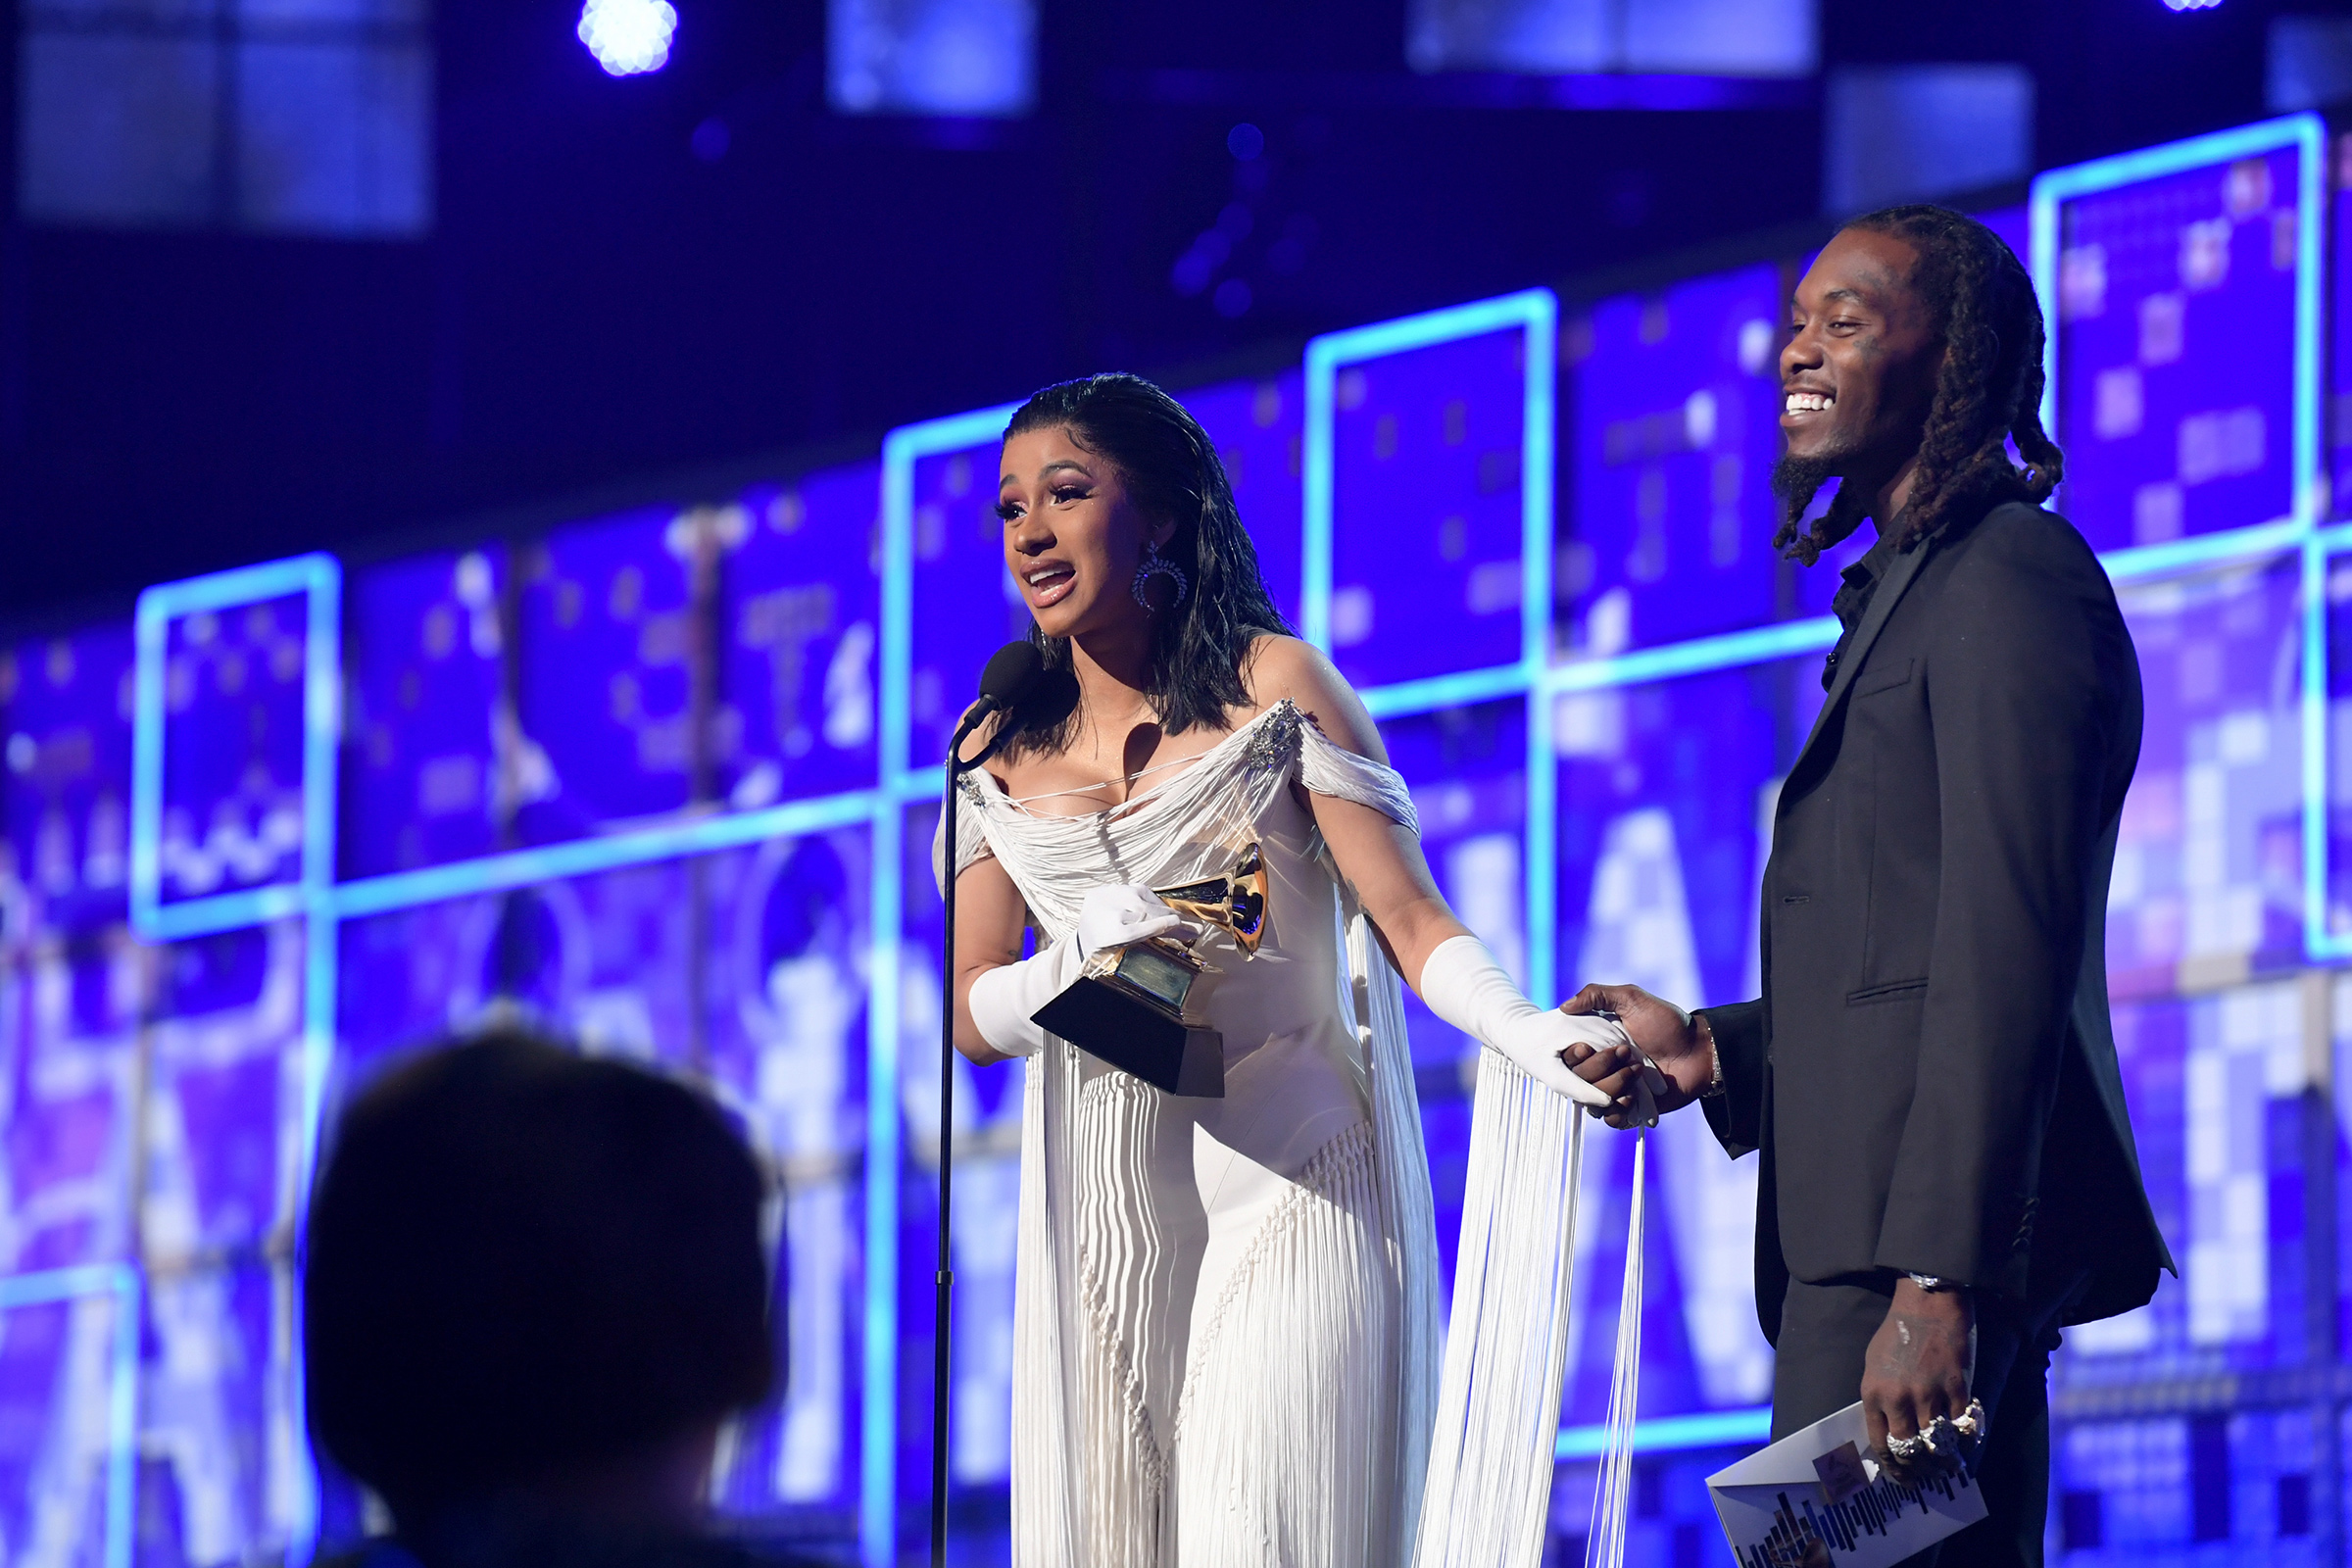 Cardi B accepts the Grammy for Best Rap Album during the 61st Annual Grammy Awards in Los Angeles, on Feb. 10, 2019.